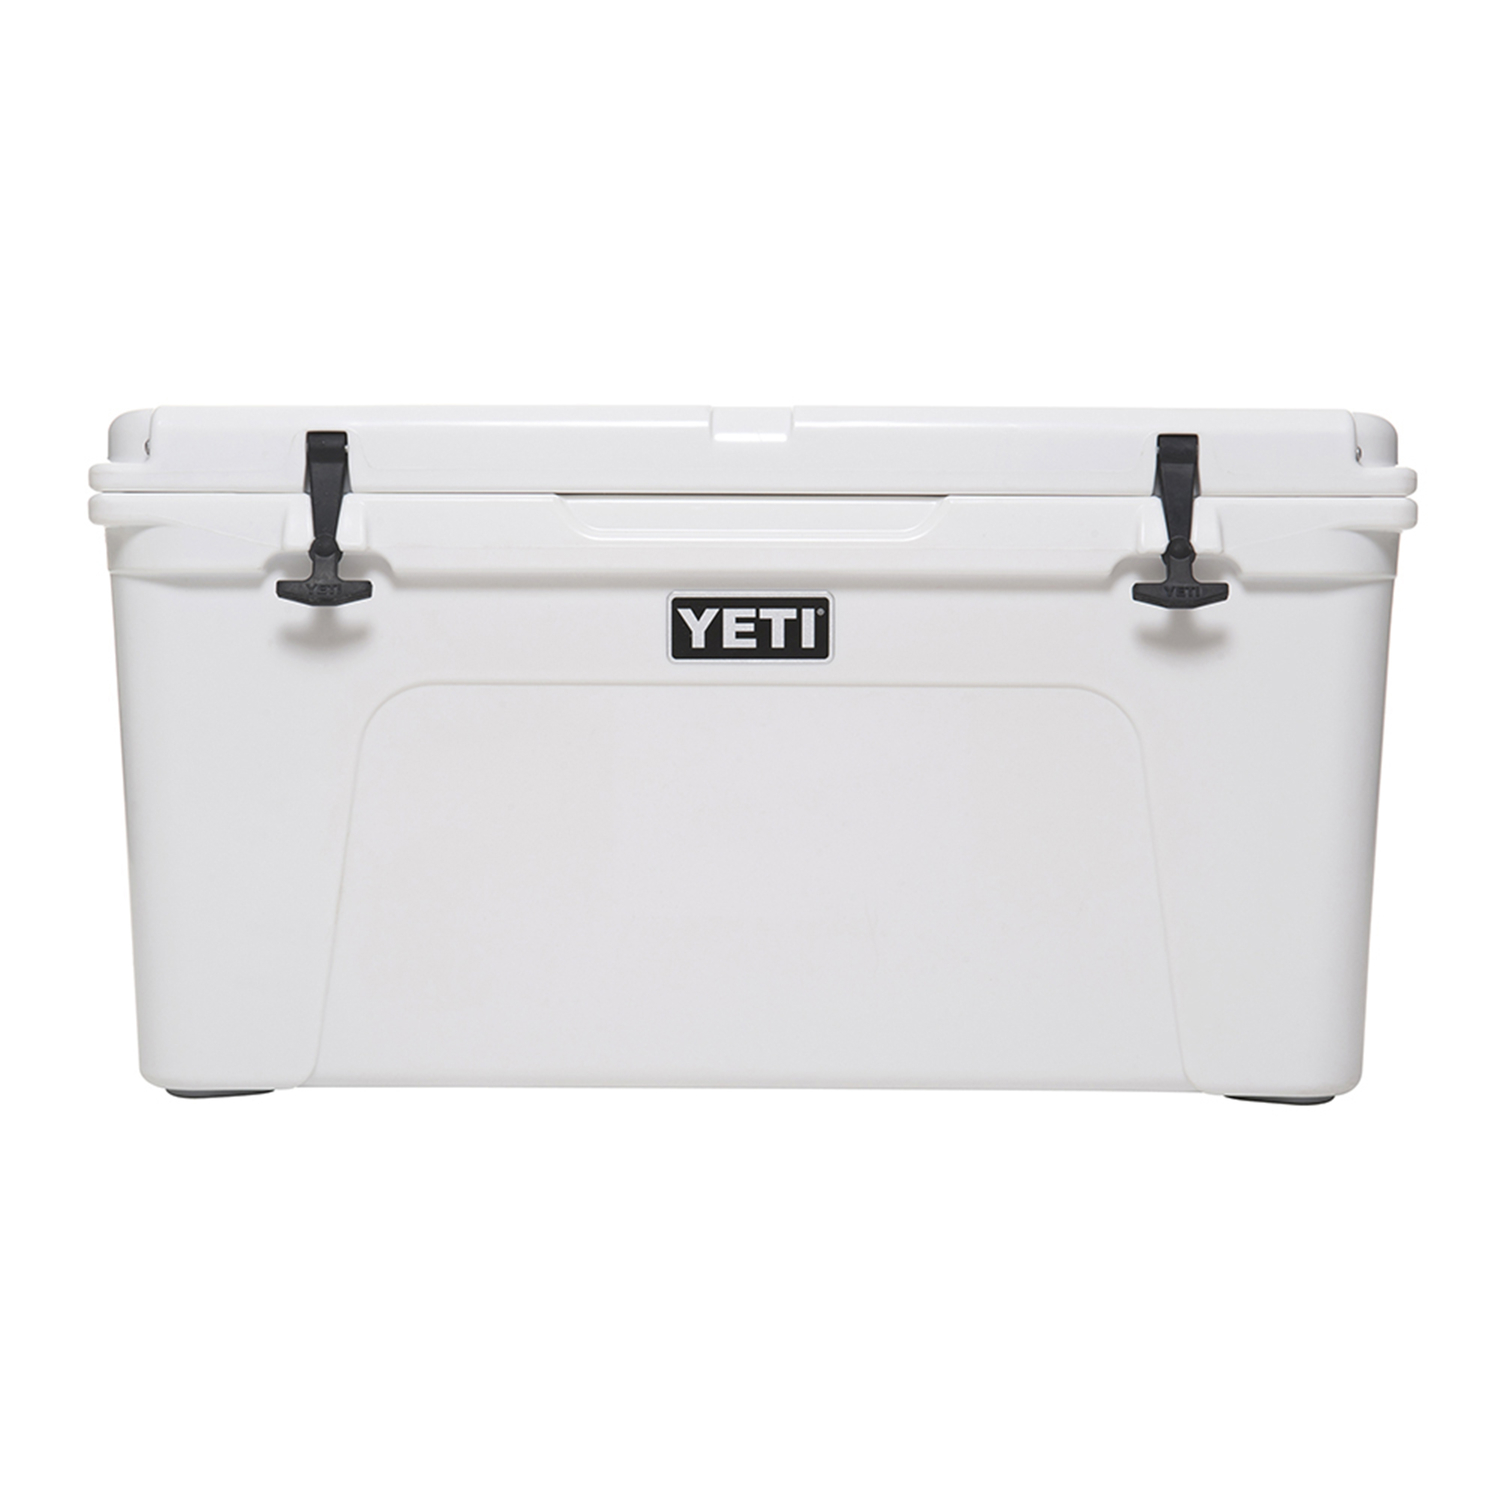 YETI  Tundra 75  Cooler  50 can White